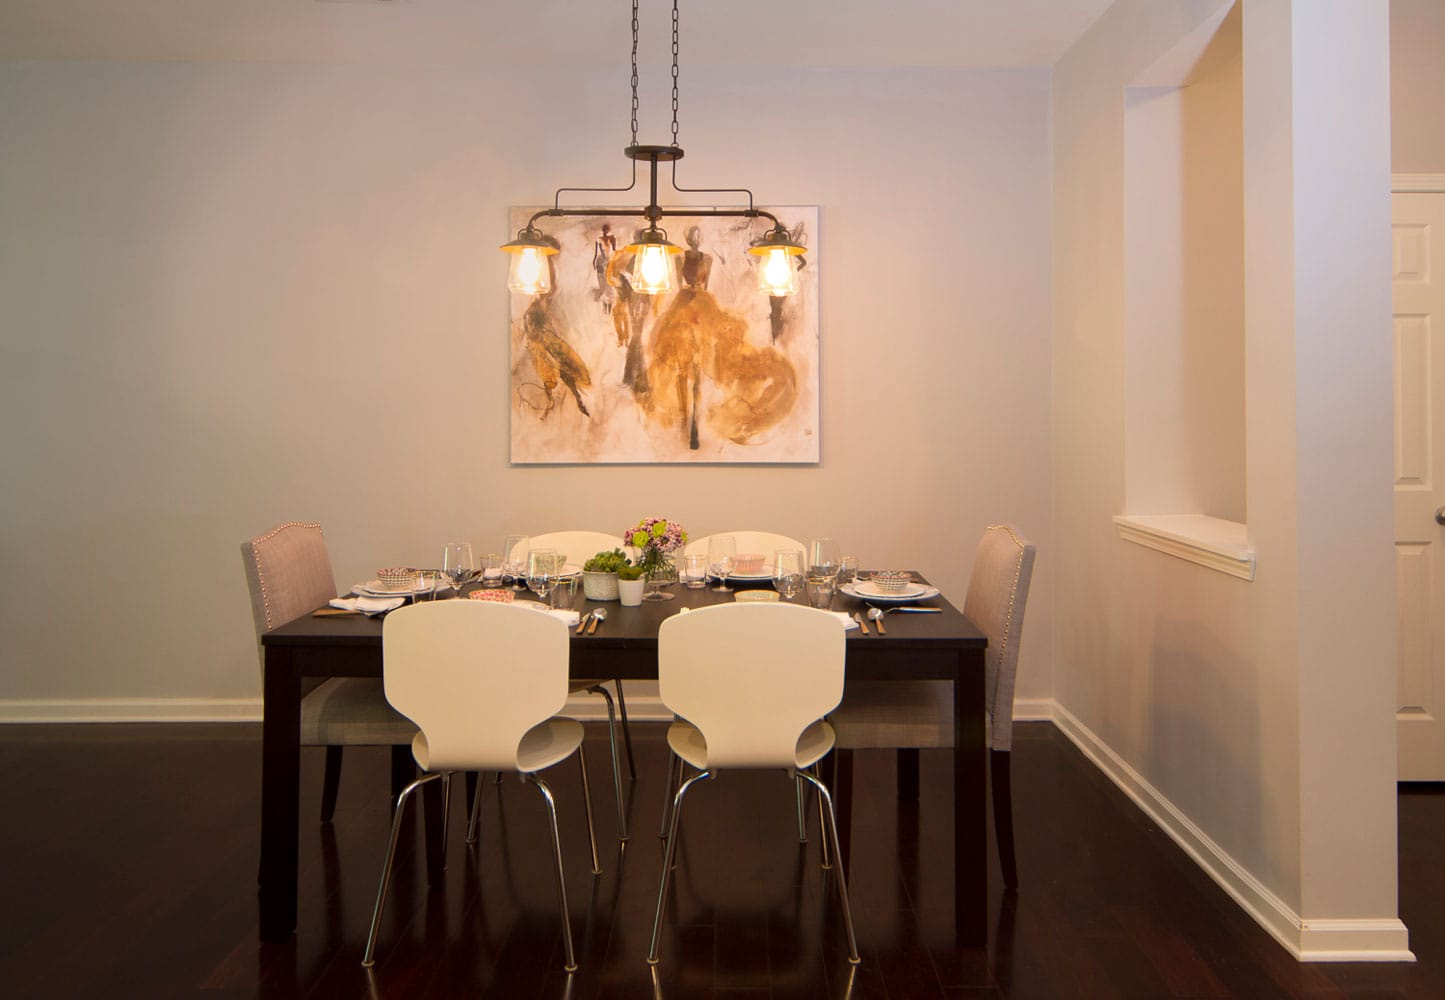 Dining room interior design in Georgia